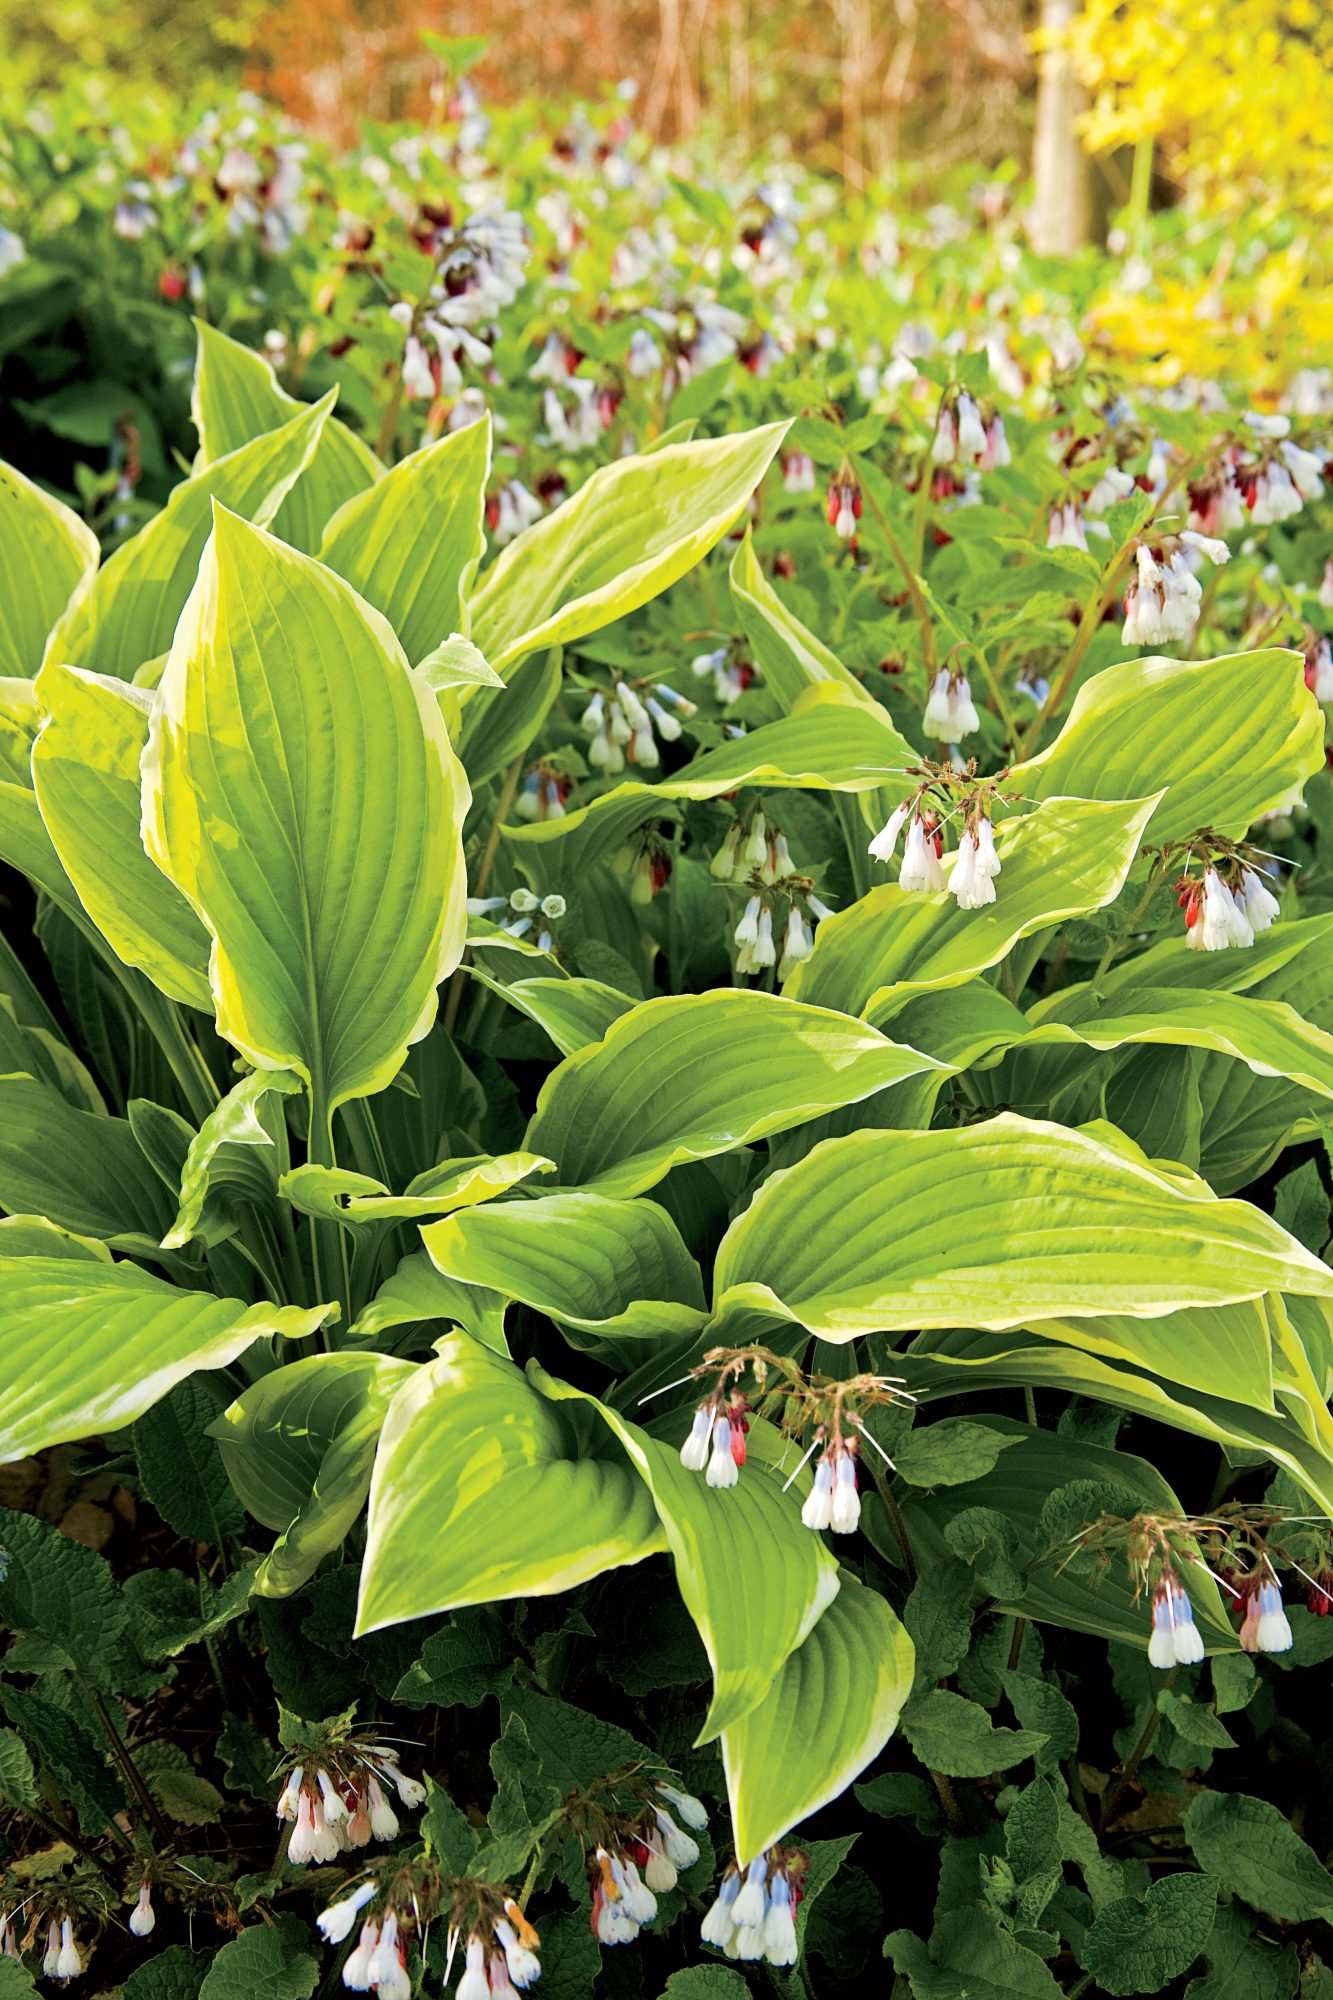 Variegated Hostas and Bright Purple Irises surrounding a small pond